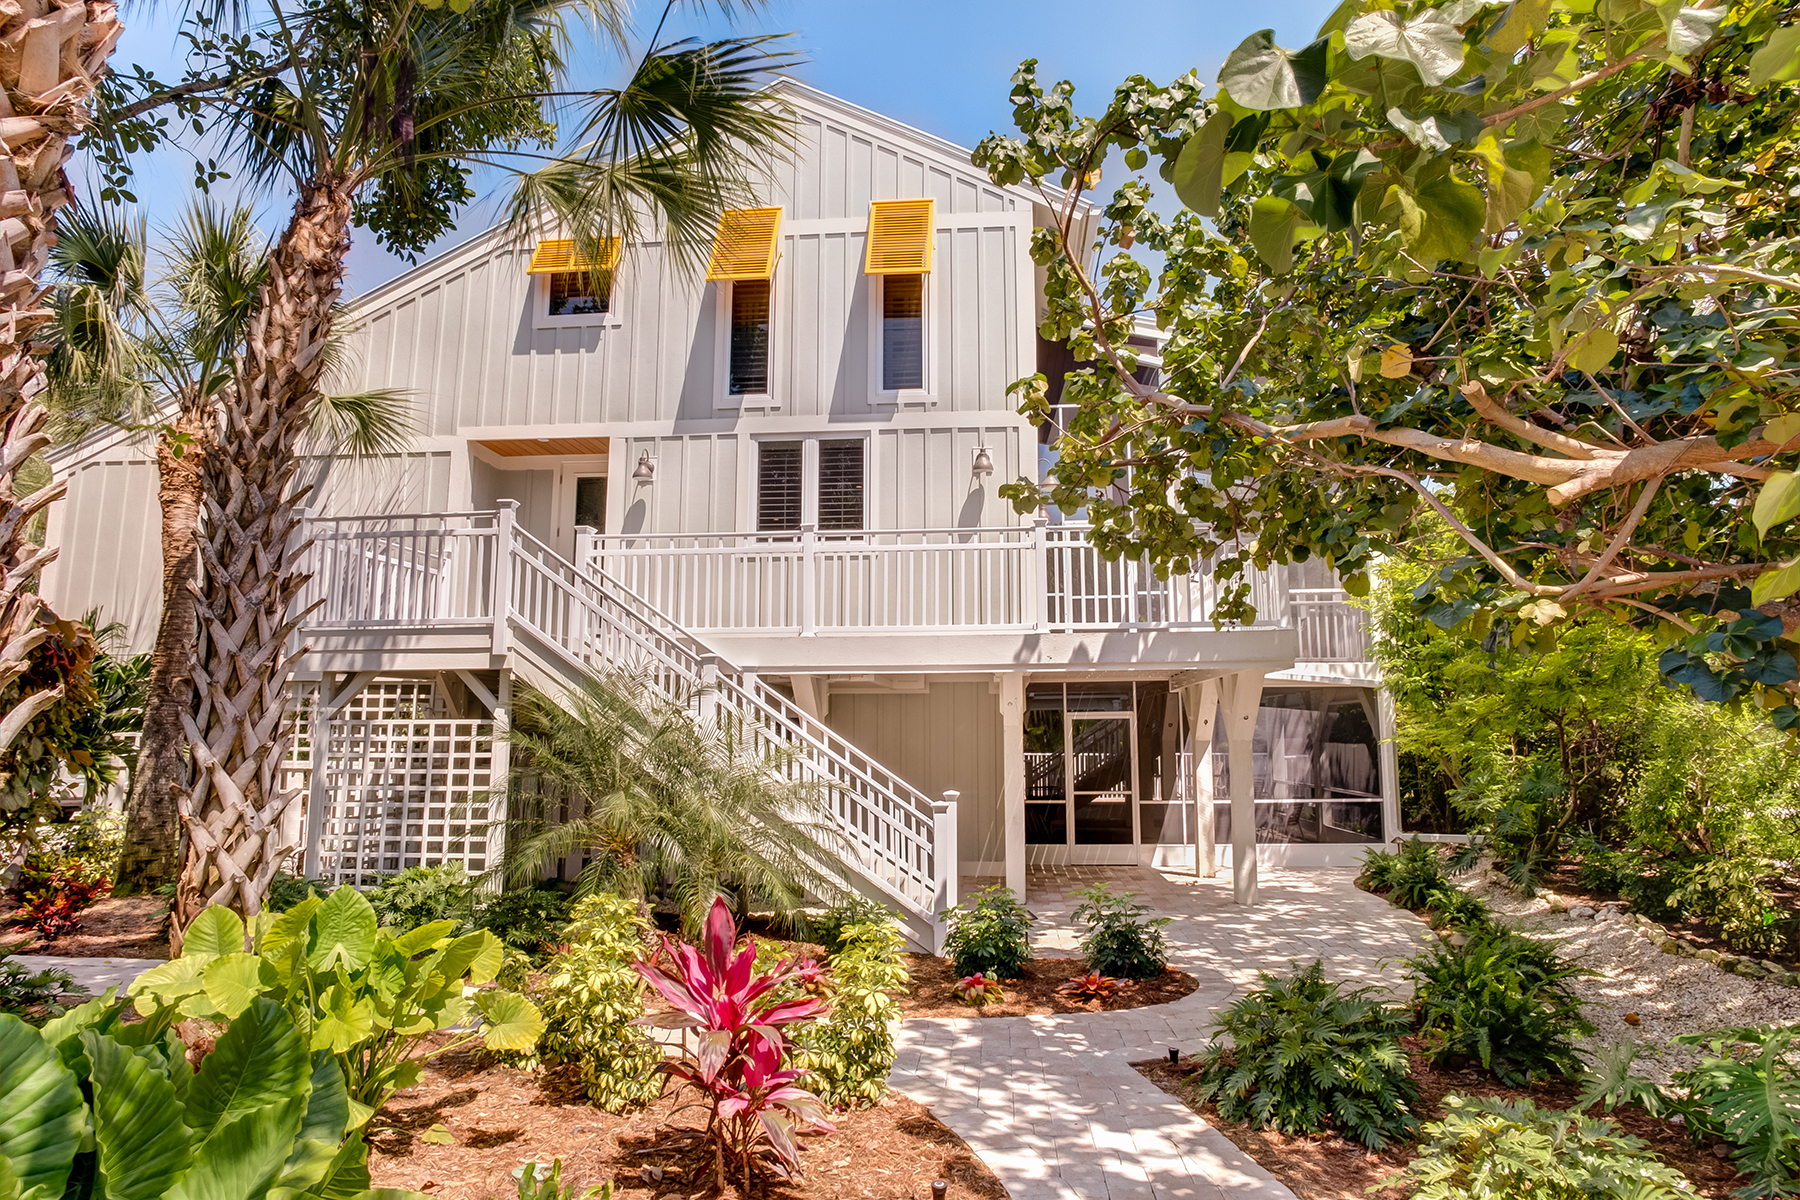 Casa Unifamiliar por un Venta en Captiva 11411 Old Lodge Ln, Captiva, Florida 33924 Estados Unidos